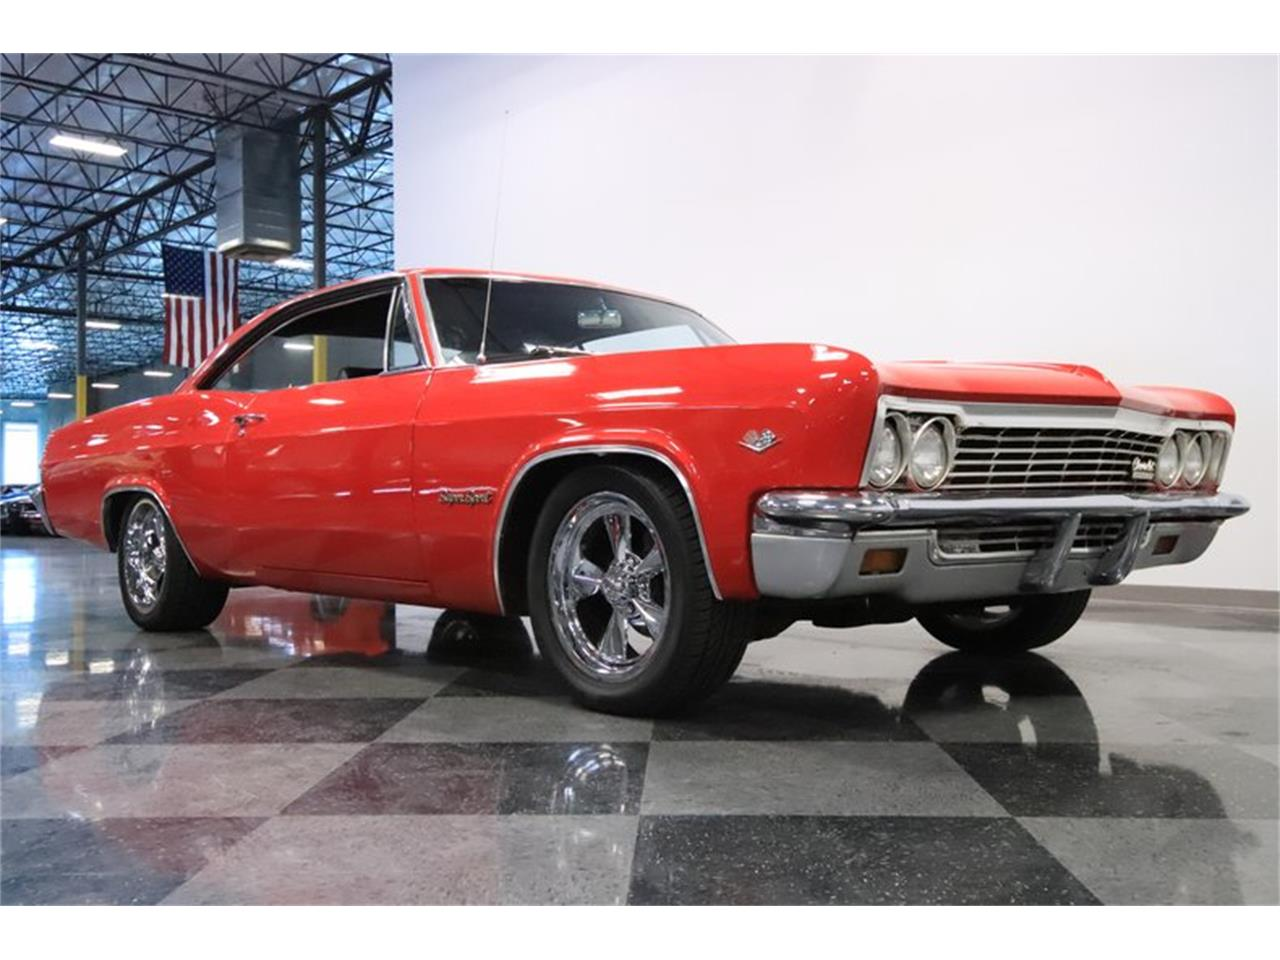 Large Picture of Classic '66 Impala - $29,995.00 Offered by Streetside Classics - Phoenix - Q2EL